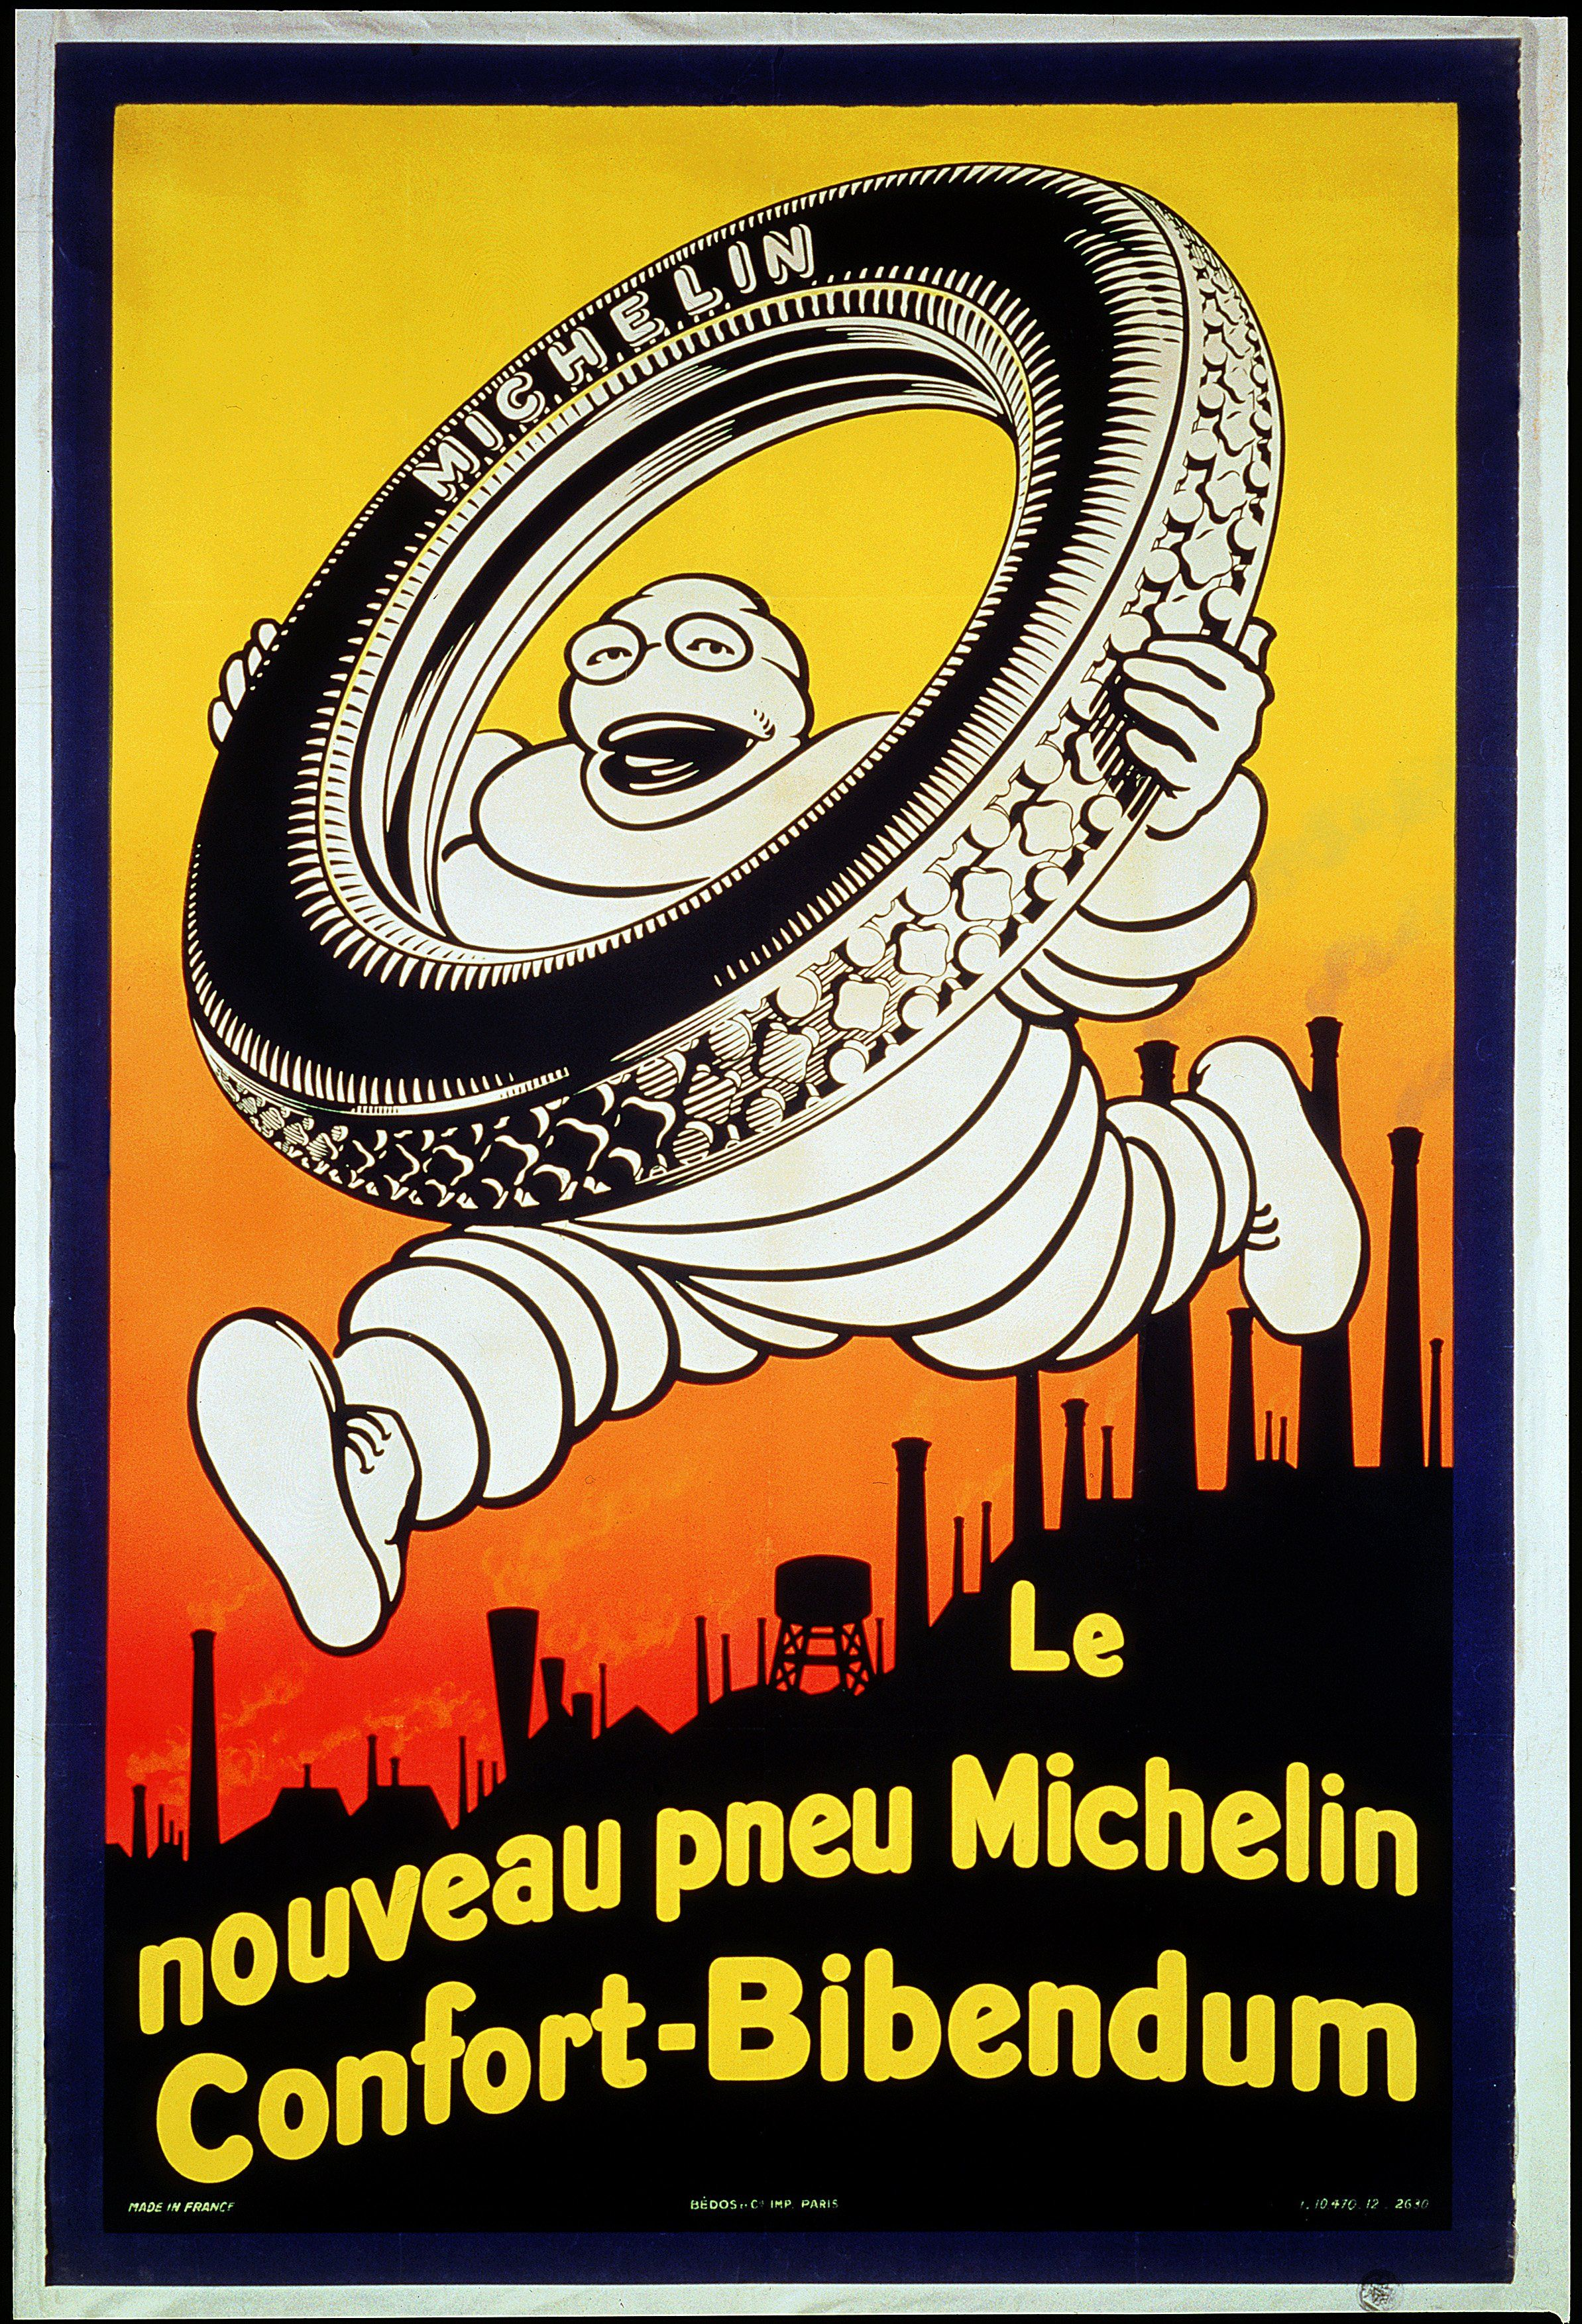 Sign Affiche Advertising Michelin 1926Metal Publicité F1JcTKl